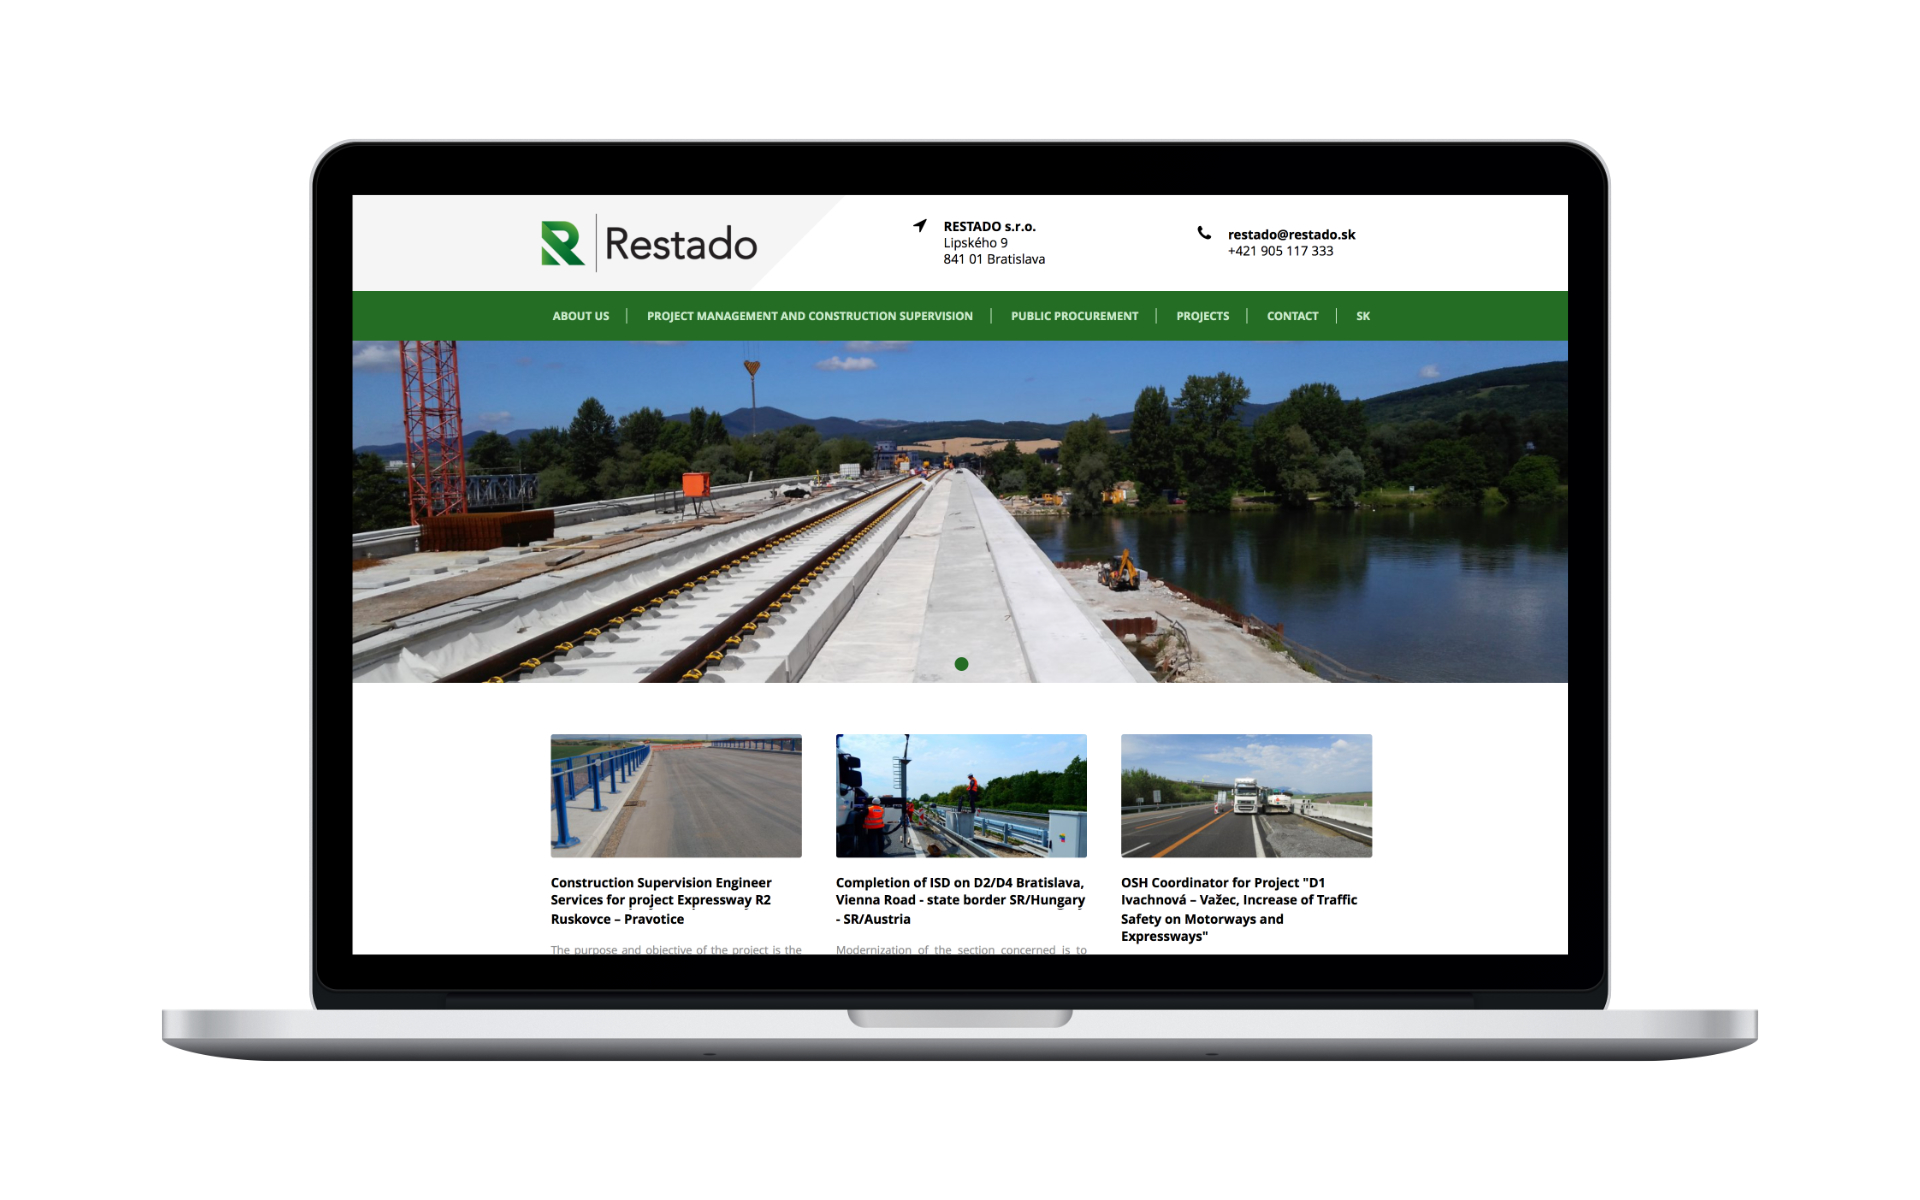 website design and branding for restado by michael maleek djibril